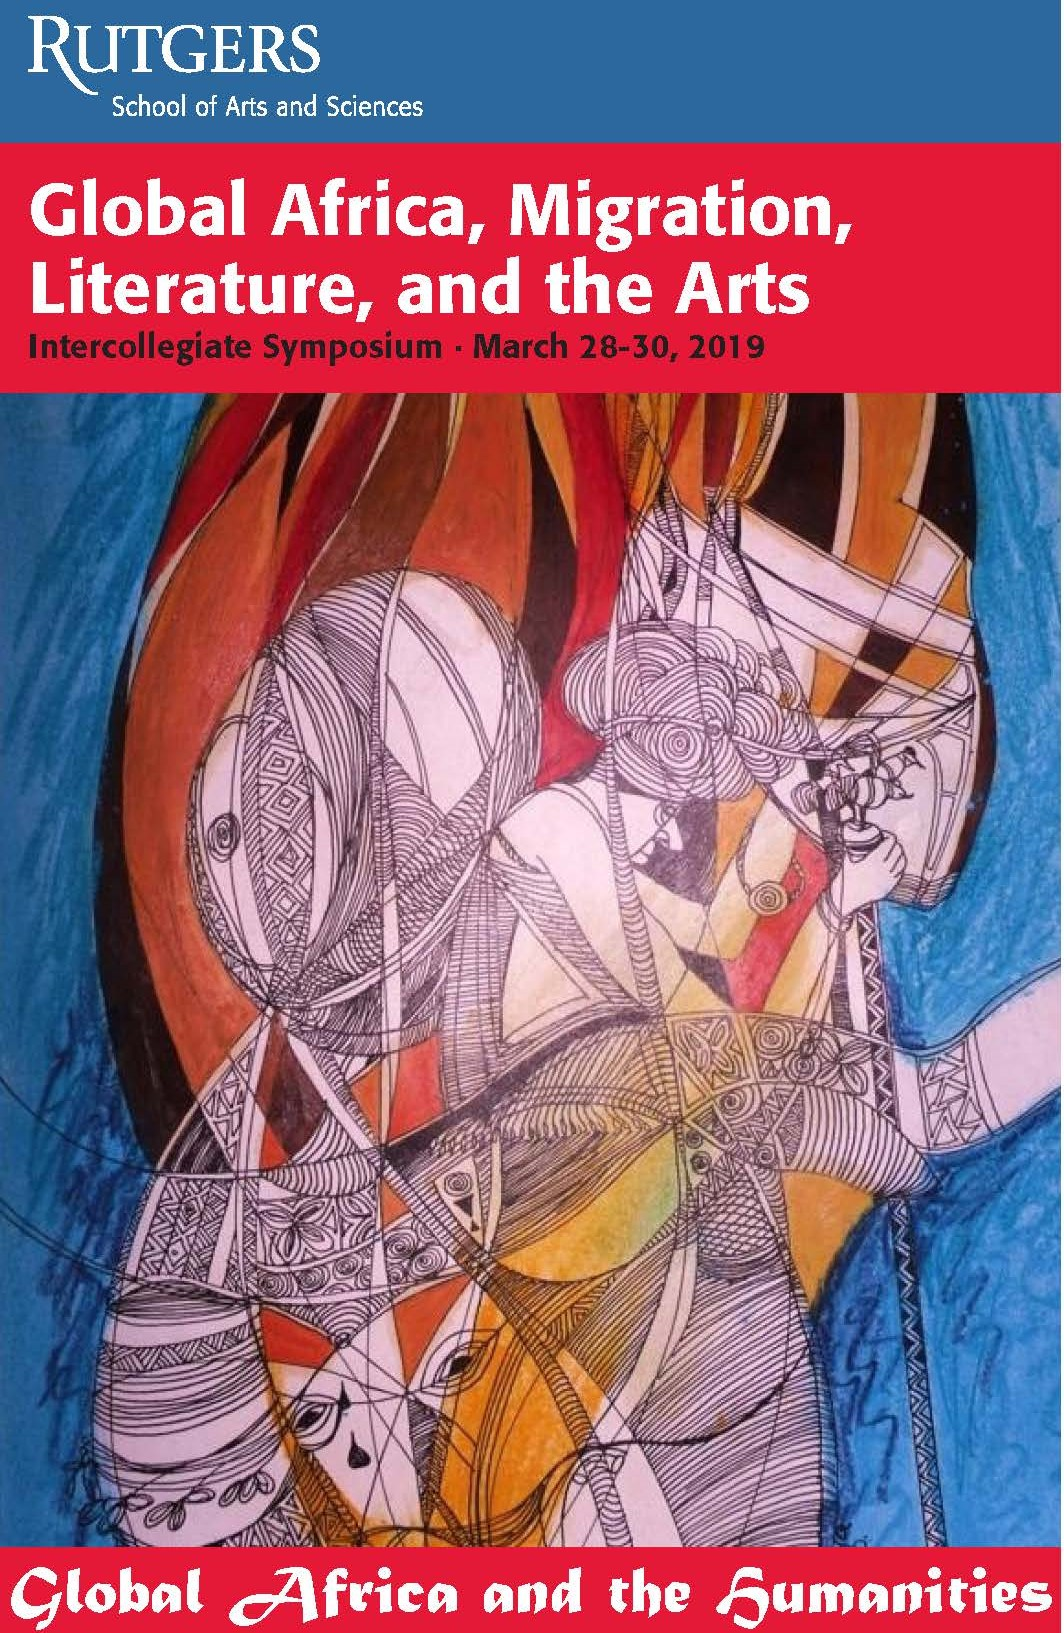 Global Africa, Migration, Literature, and the Arts 2019 Booklet